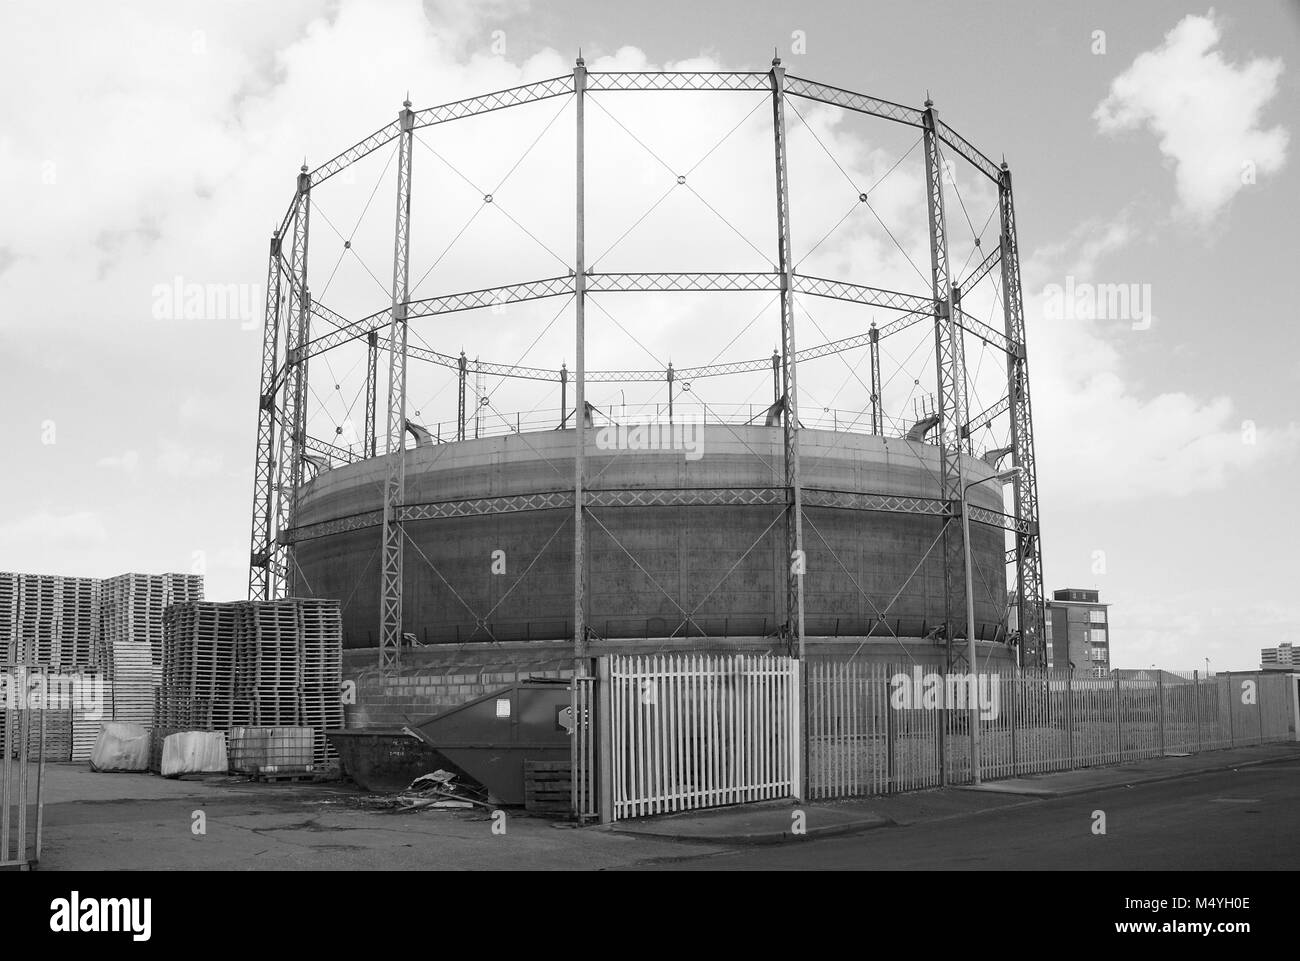 St Marks Street, Victorian gas storage installation, Gasometer, industrial site, Kingston Upon Hull, gas company - Stock Image